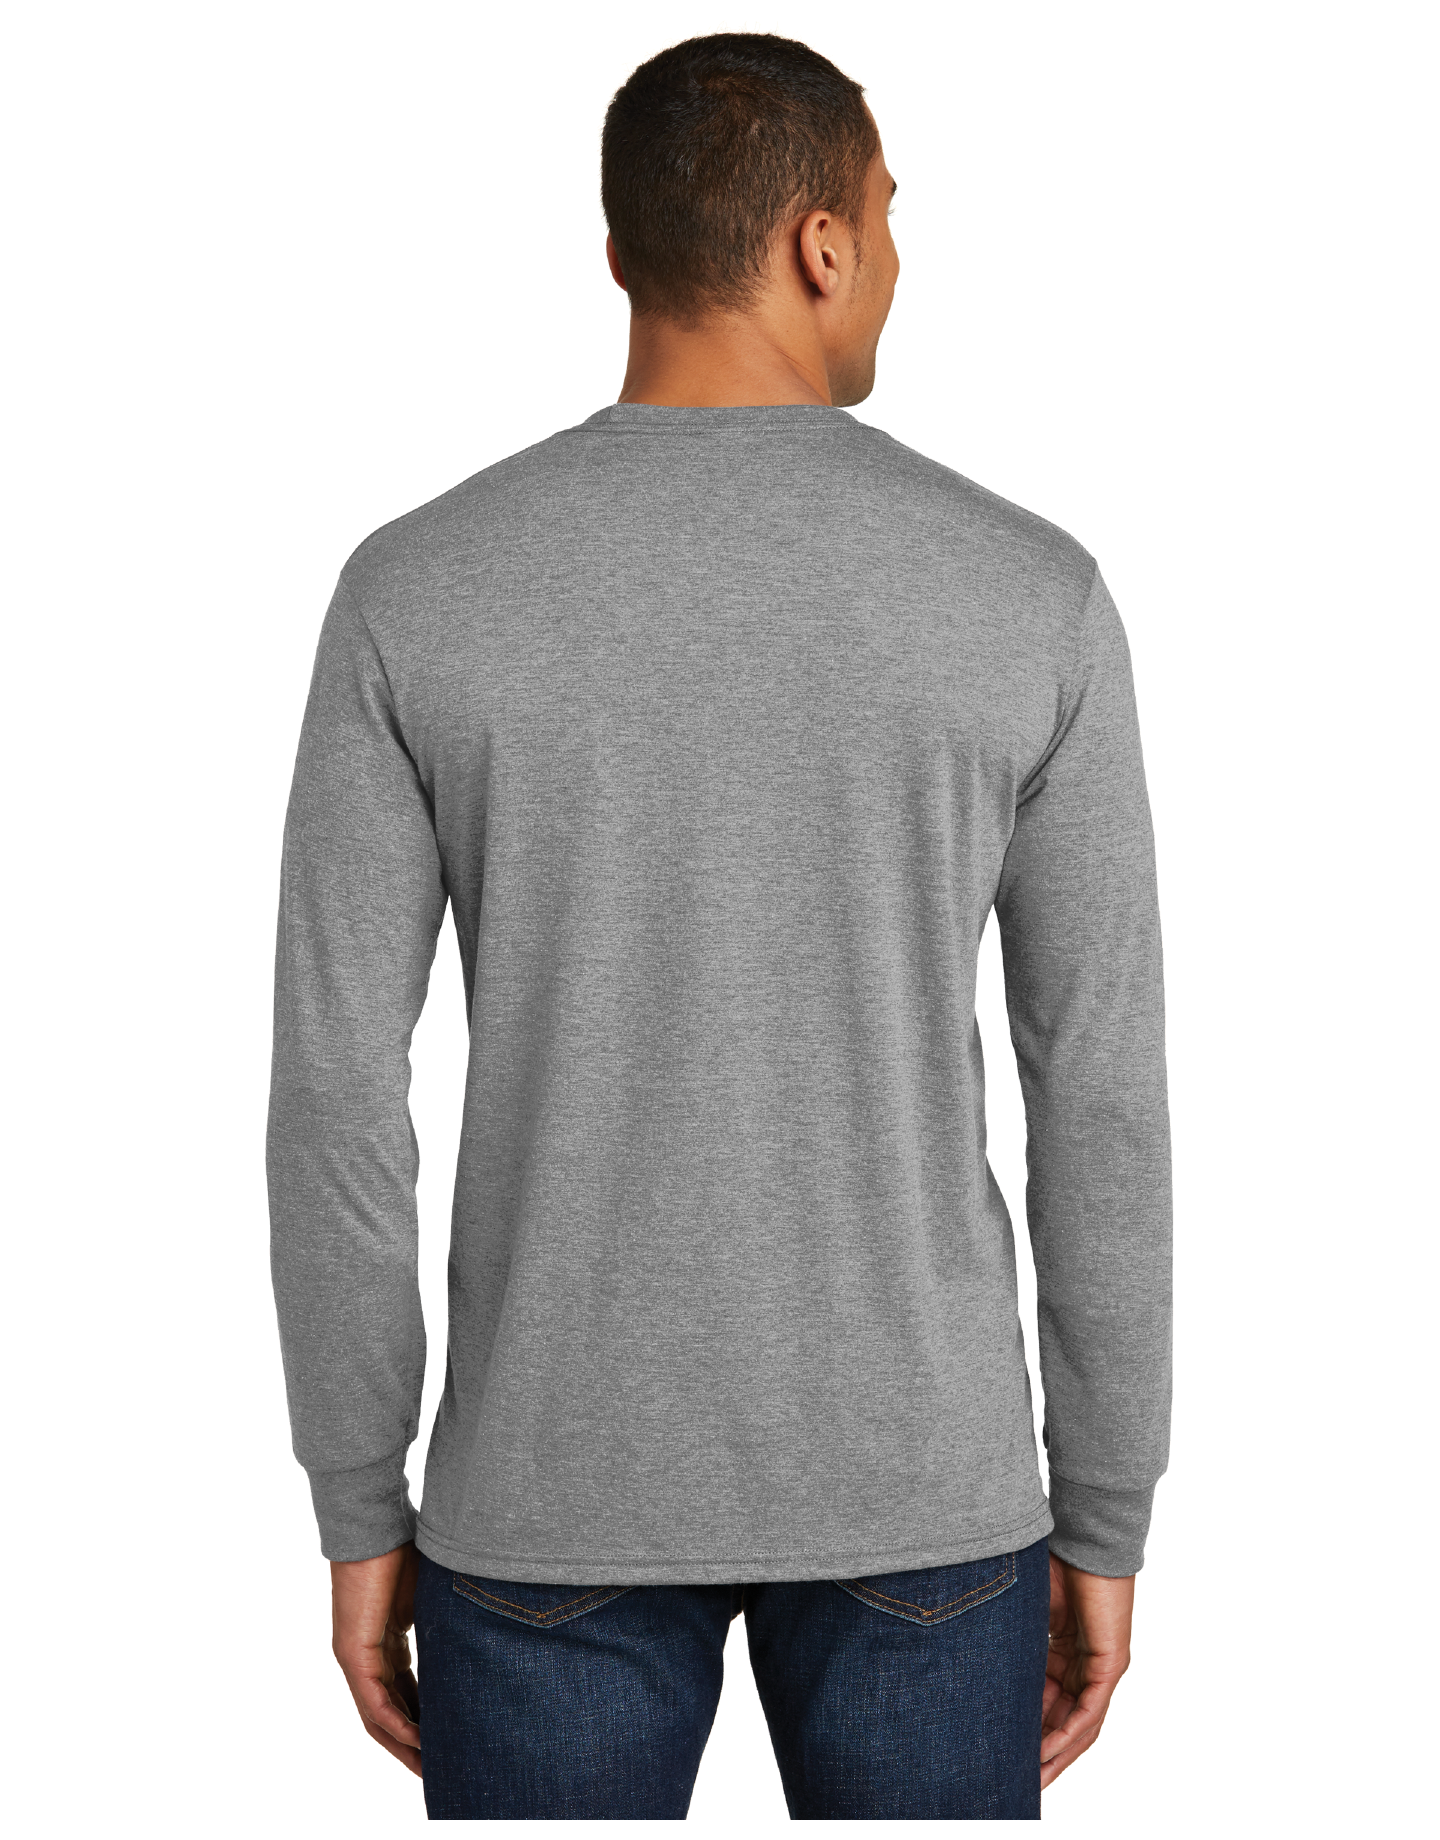 Mad Dash Creations Runner Recovery Mode Long Sleeve Tee - Men